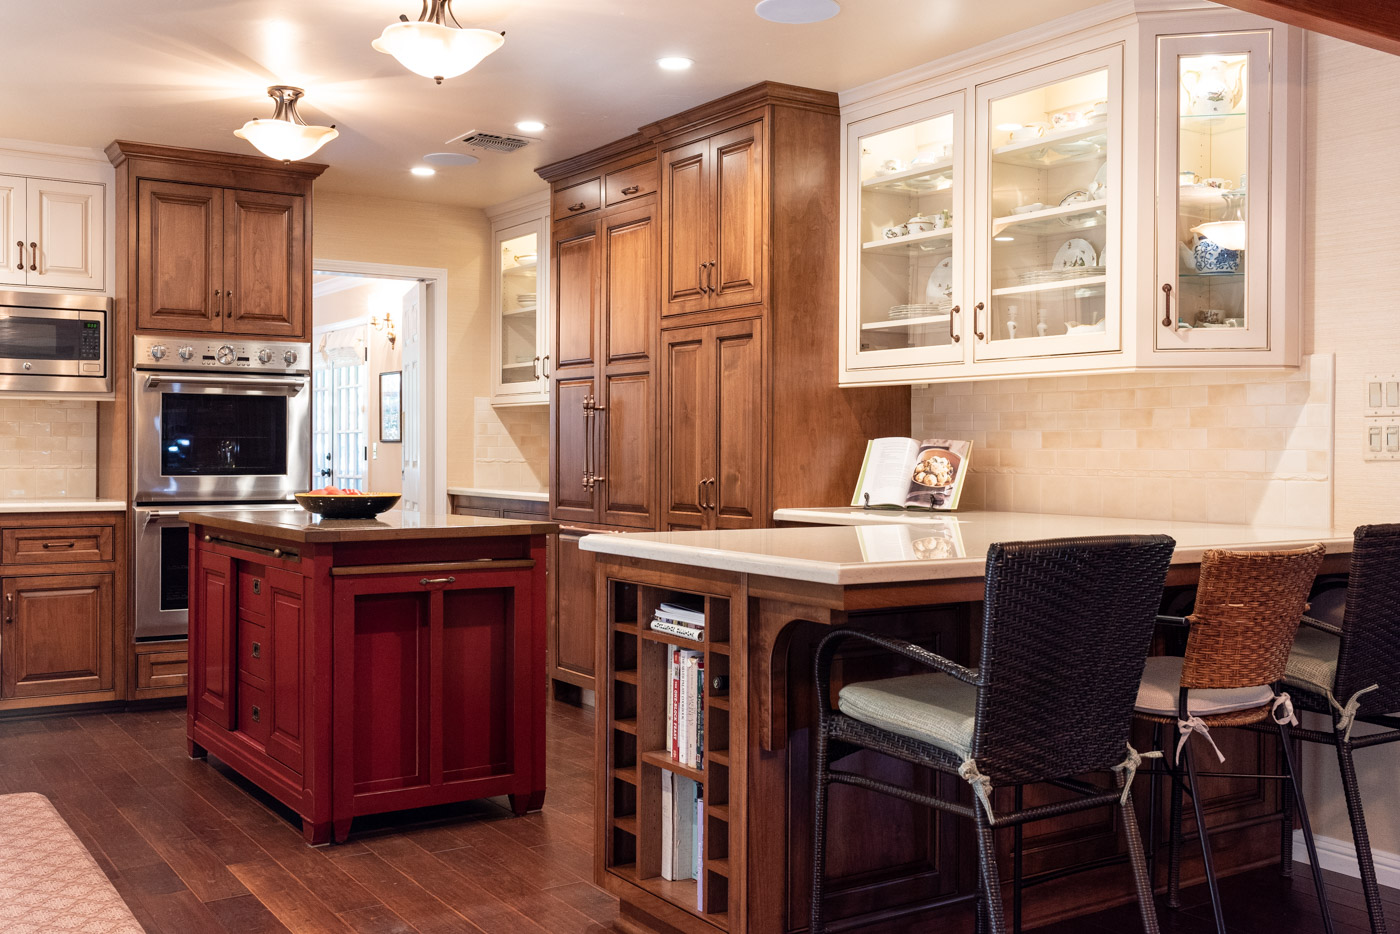 English Country custom kitchen cabinets with G-shaped layout and mixed cabinet finishes